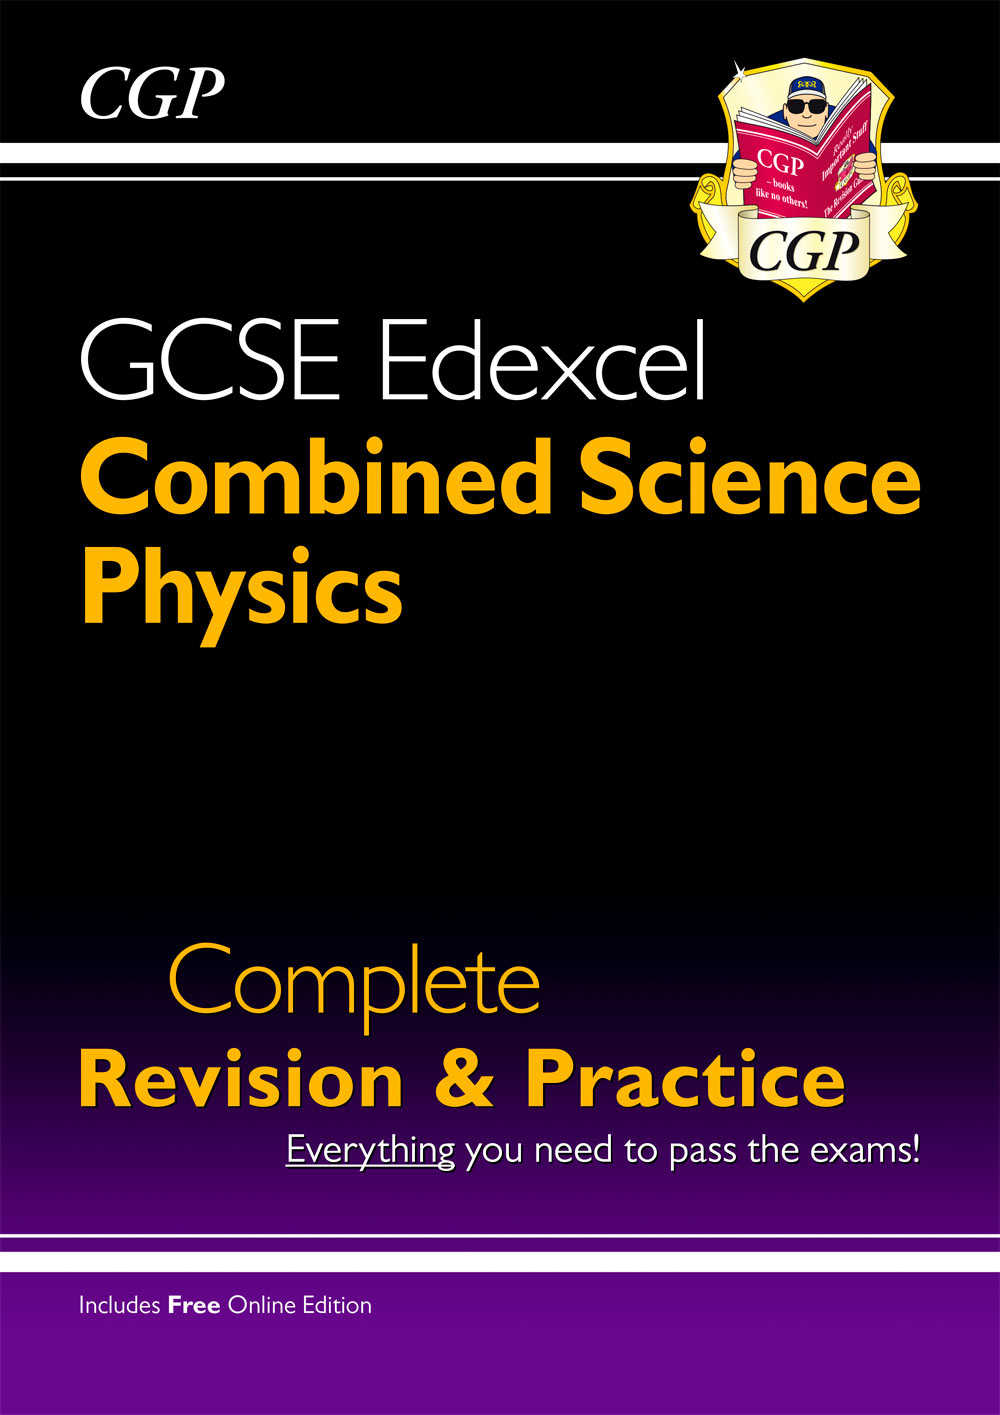 SCPES41 - Grade 9-1 GCSE Combined Science: Physics Edexcel Complete Revision & Practice with Online